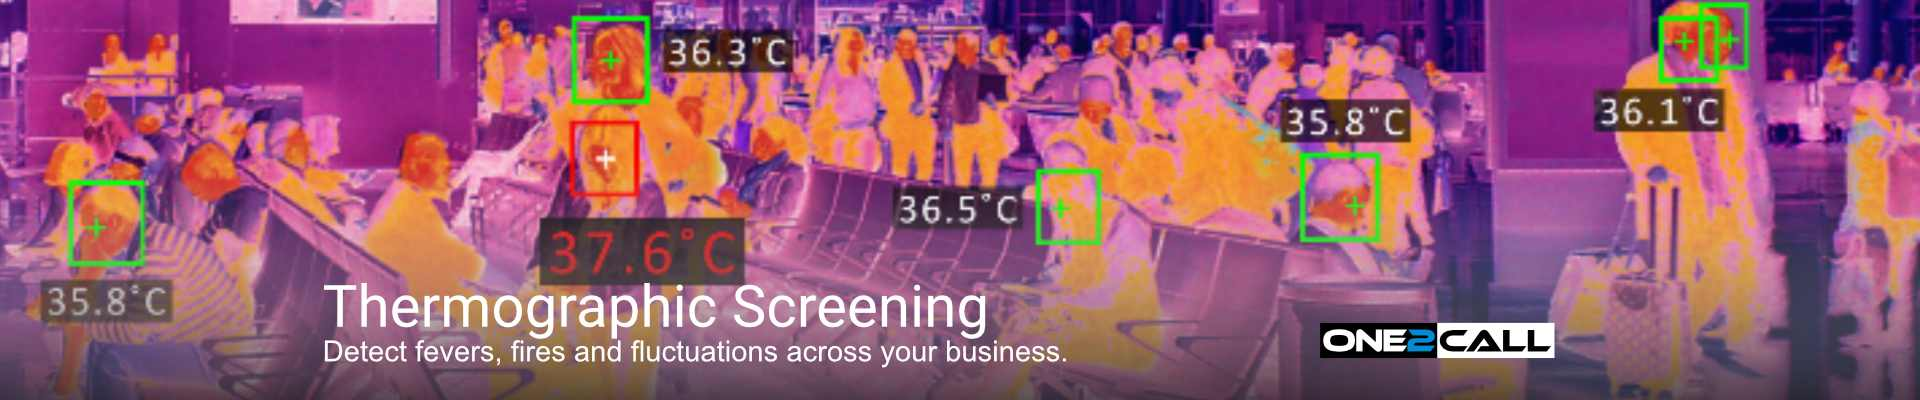 Thermographic Temperature Screen - Detect fevers, fires and fluctuations across your business.